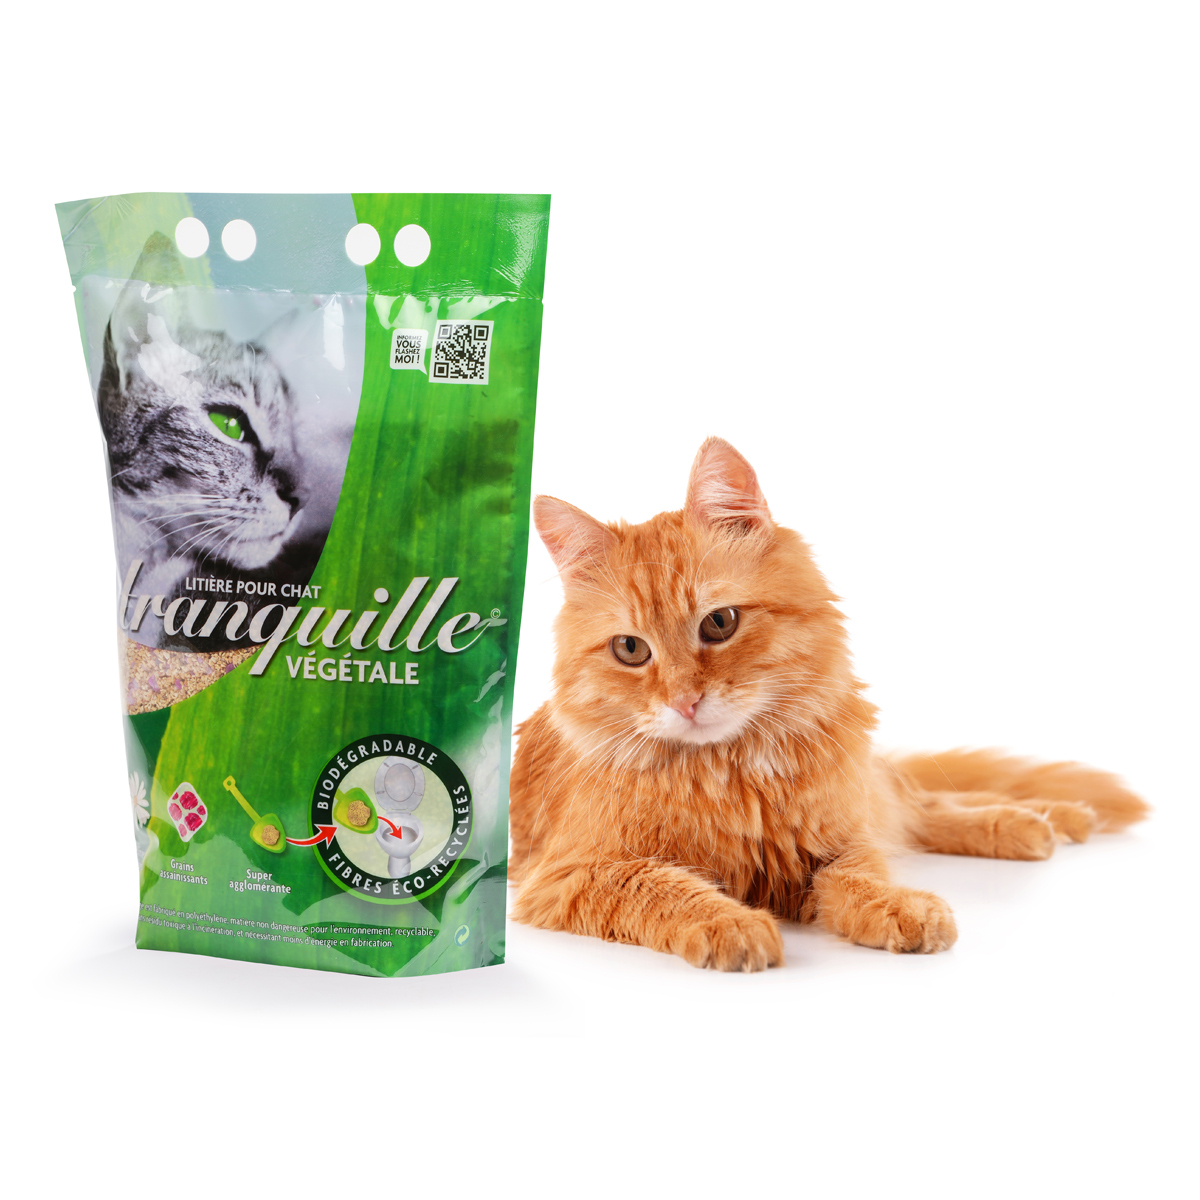 litiere chat leclerc eco+